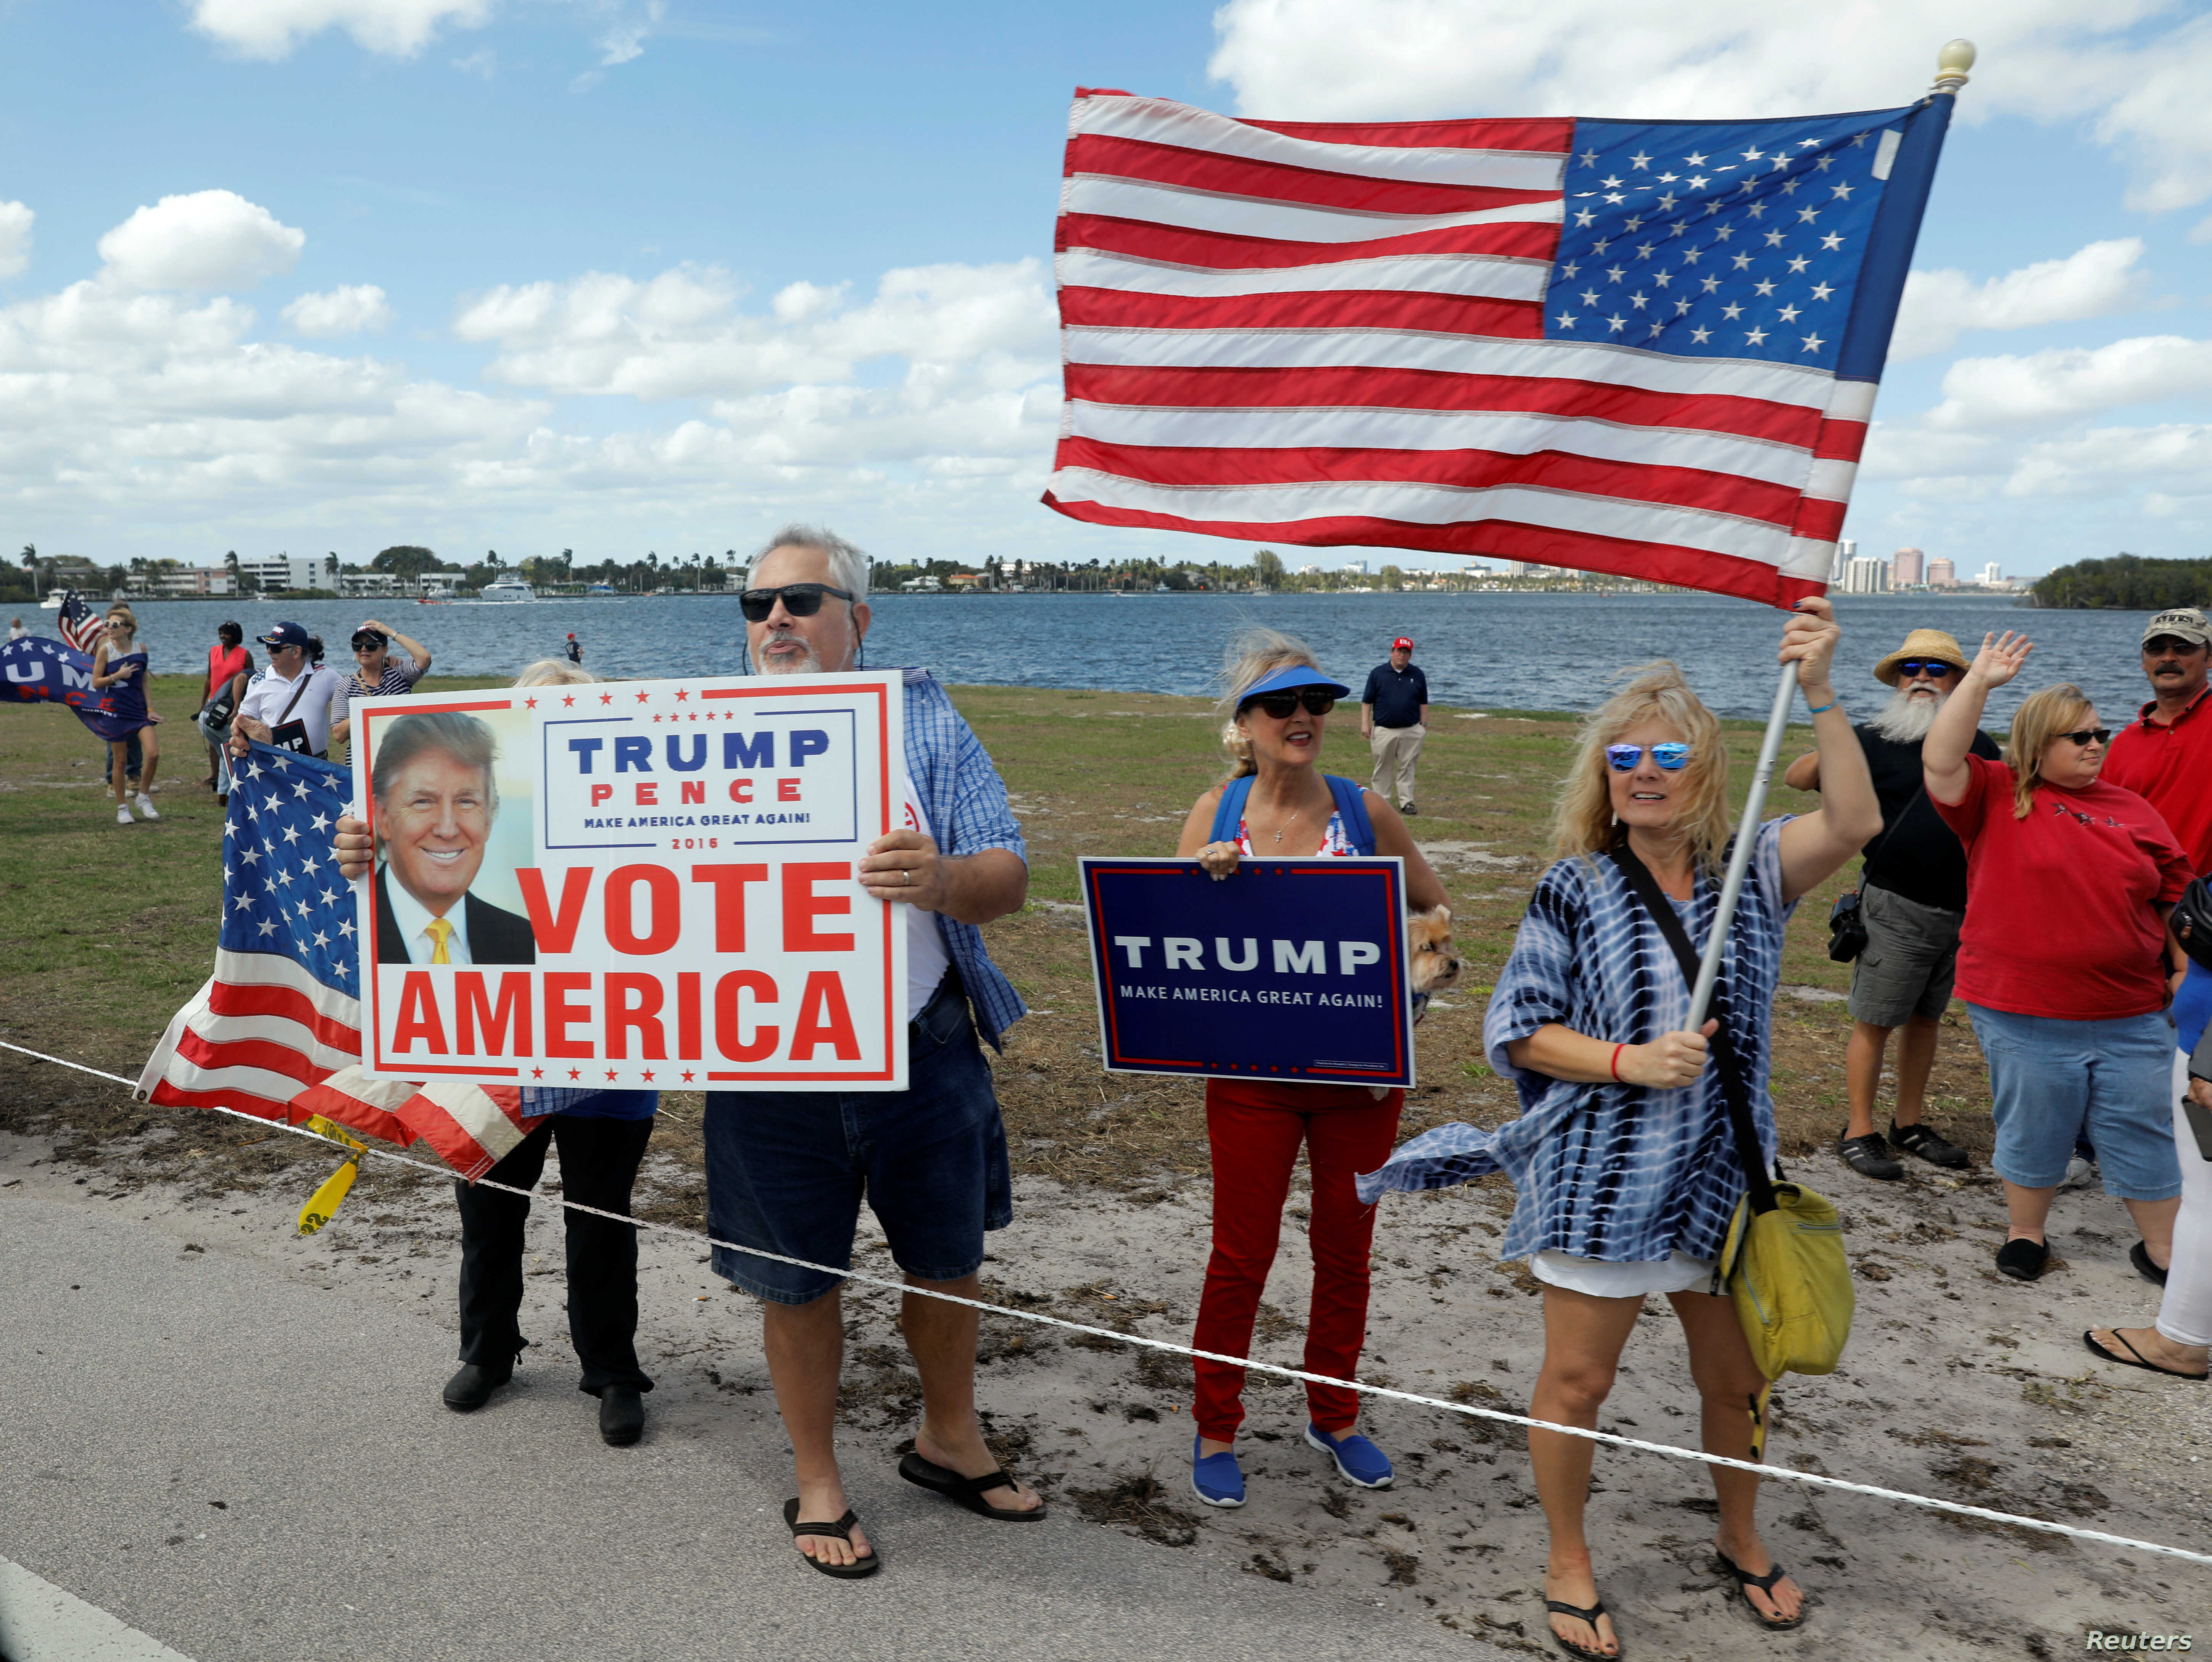 Supporters line President Donald Trump's motorcade route near the Mar-a-Lago Club in Palm Beach, Fla., March 4, 2017.